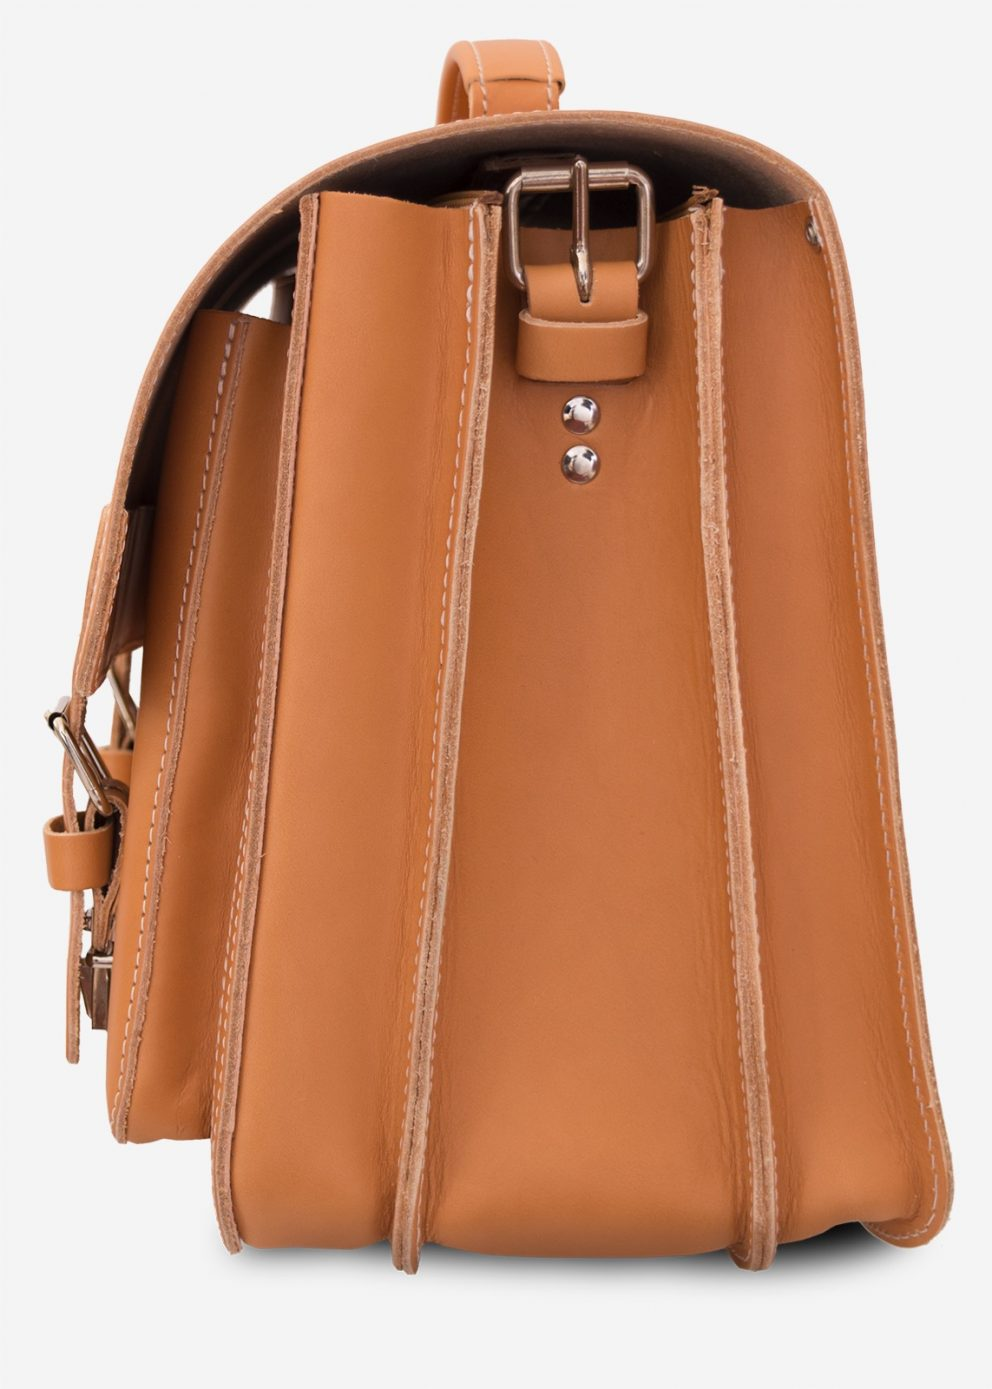 Side view of large tan leather satchel with 2 compartments and front pockets.